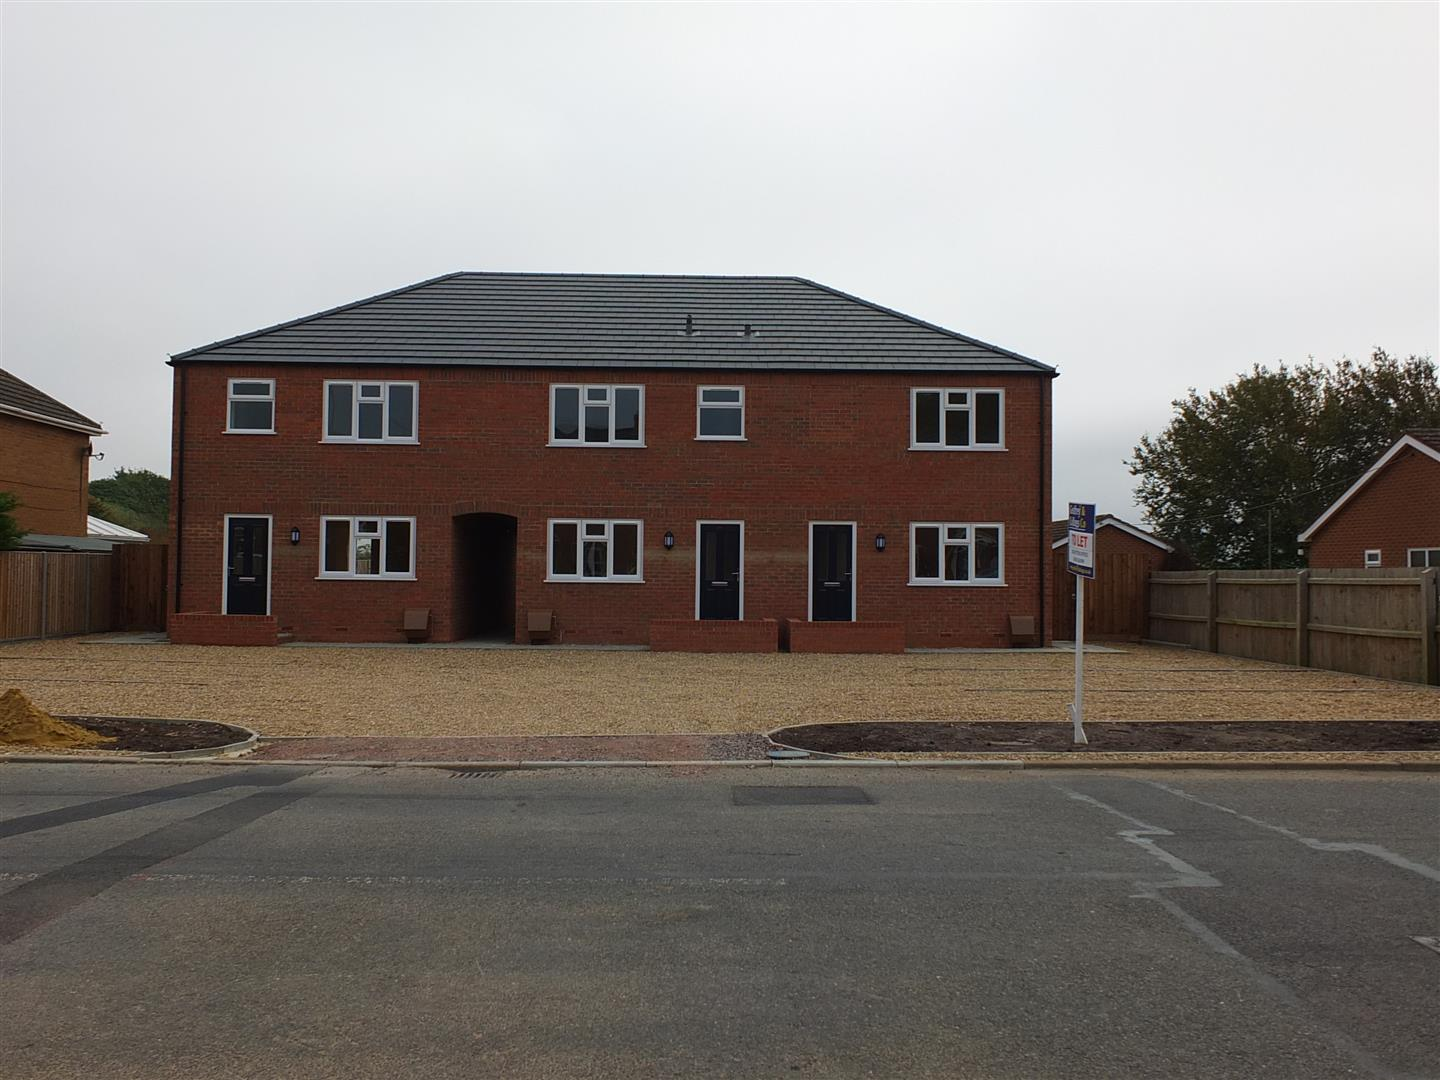 3 bed house to rent in Long Sutton, PE12 9LE  - Property Image 9